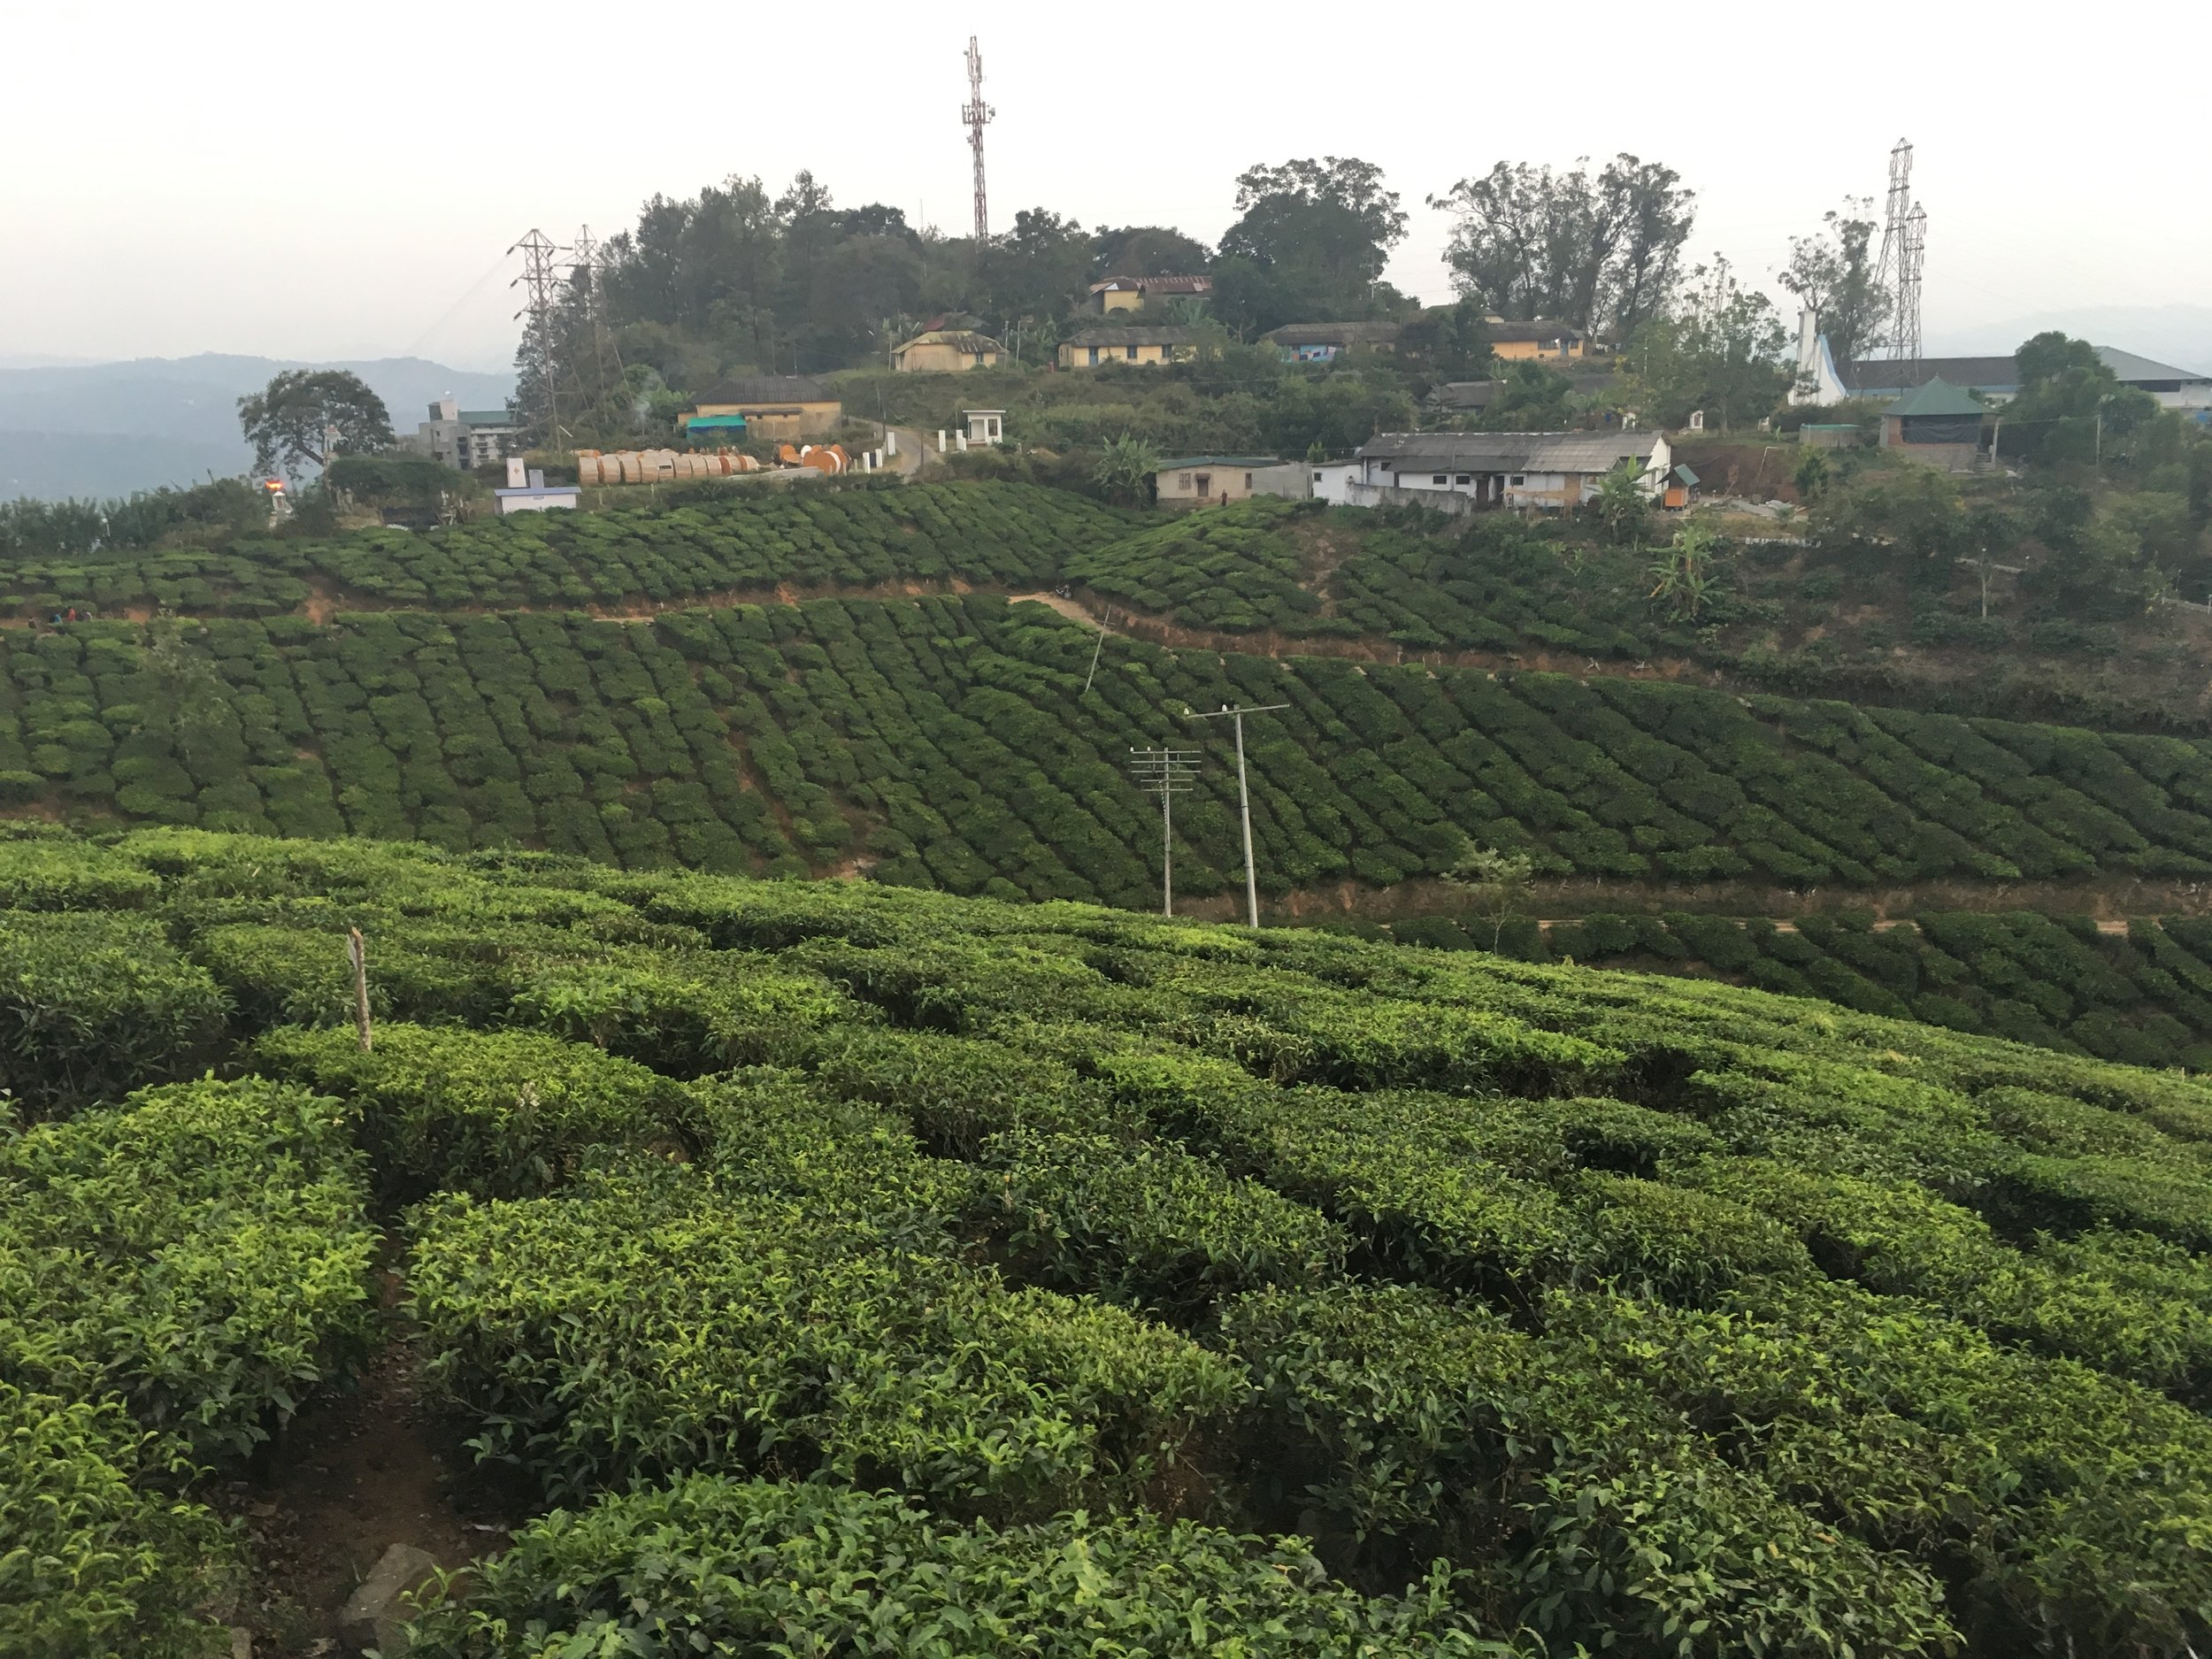 The tea plantation. The tea grows on terraces that climb the mountain walls